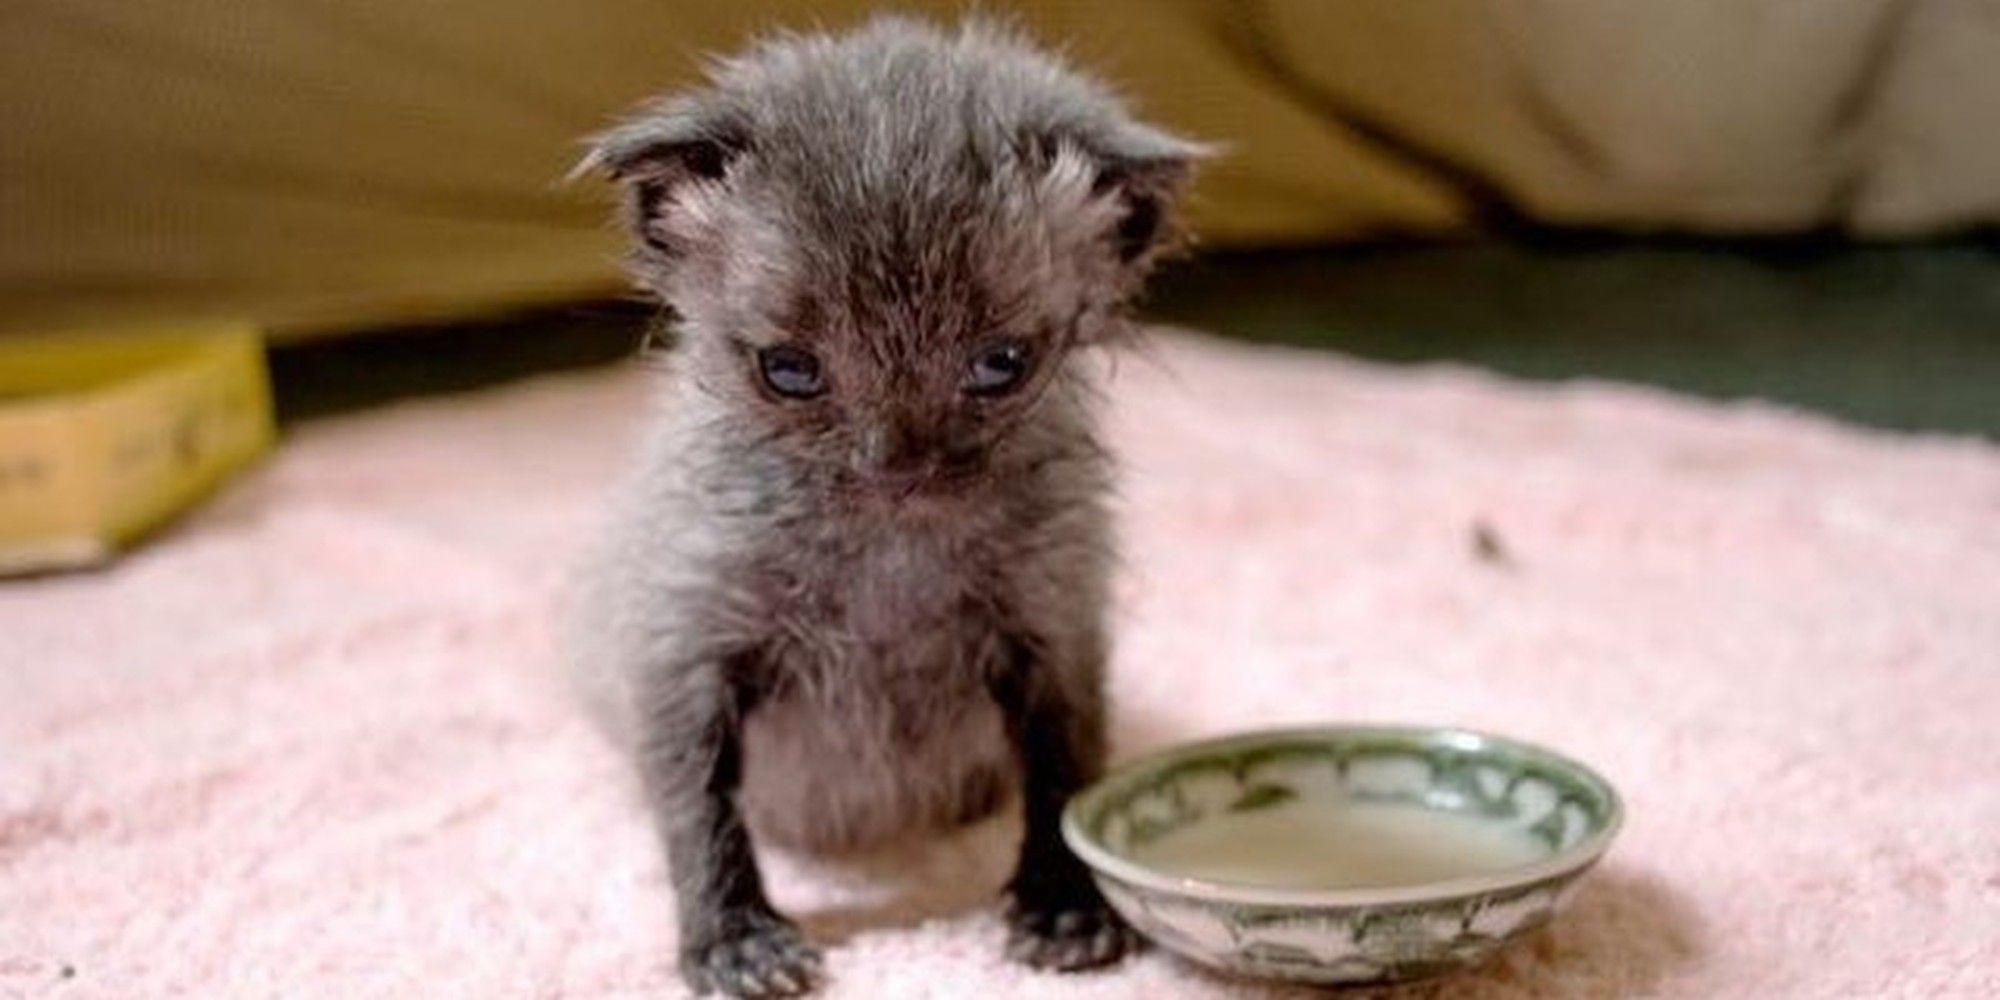 Two Months Ago A Tiny One Day Old Kitten Was Found Crawling Down The Footpath All By Himself And Soaking Wet After A Downp Newborn Kittens Kitten Baby Animals